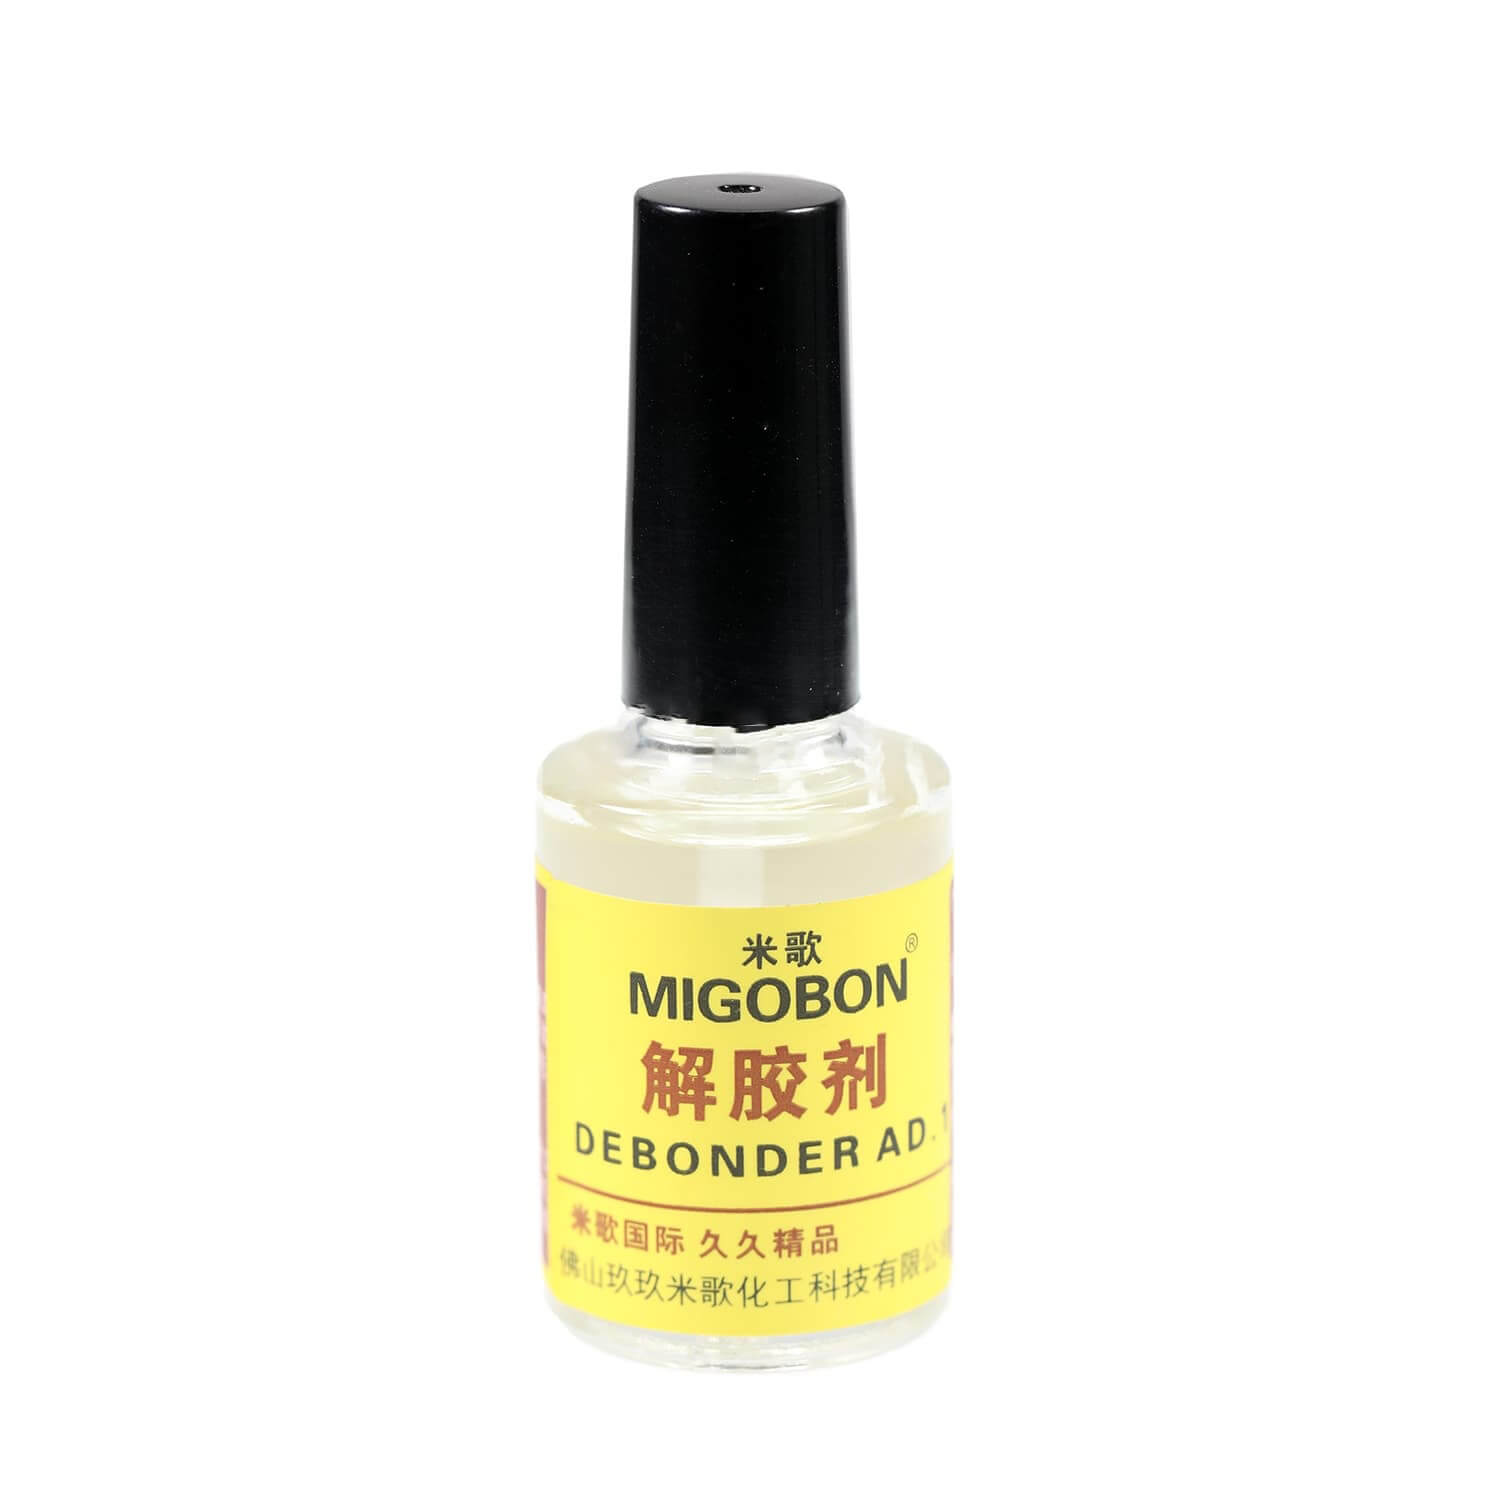 Migobon Debonder AD Liquid optical clear adhesive remover of UV glue